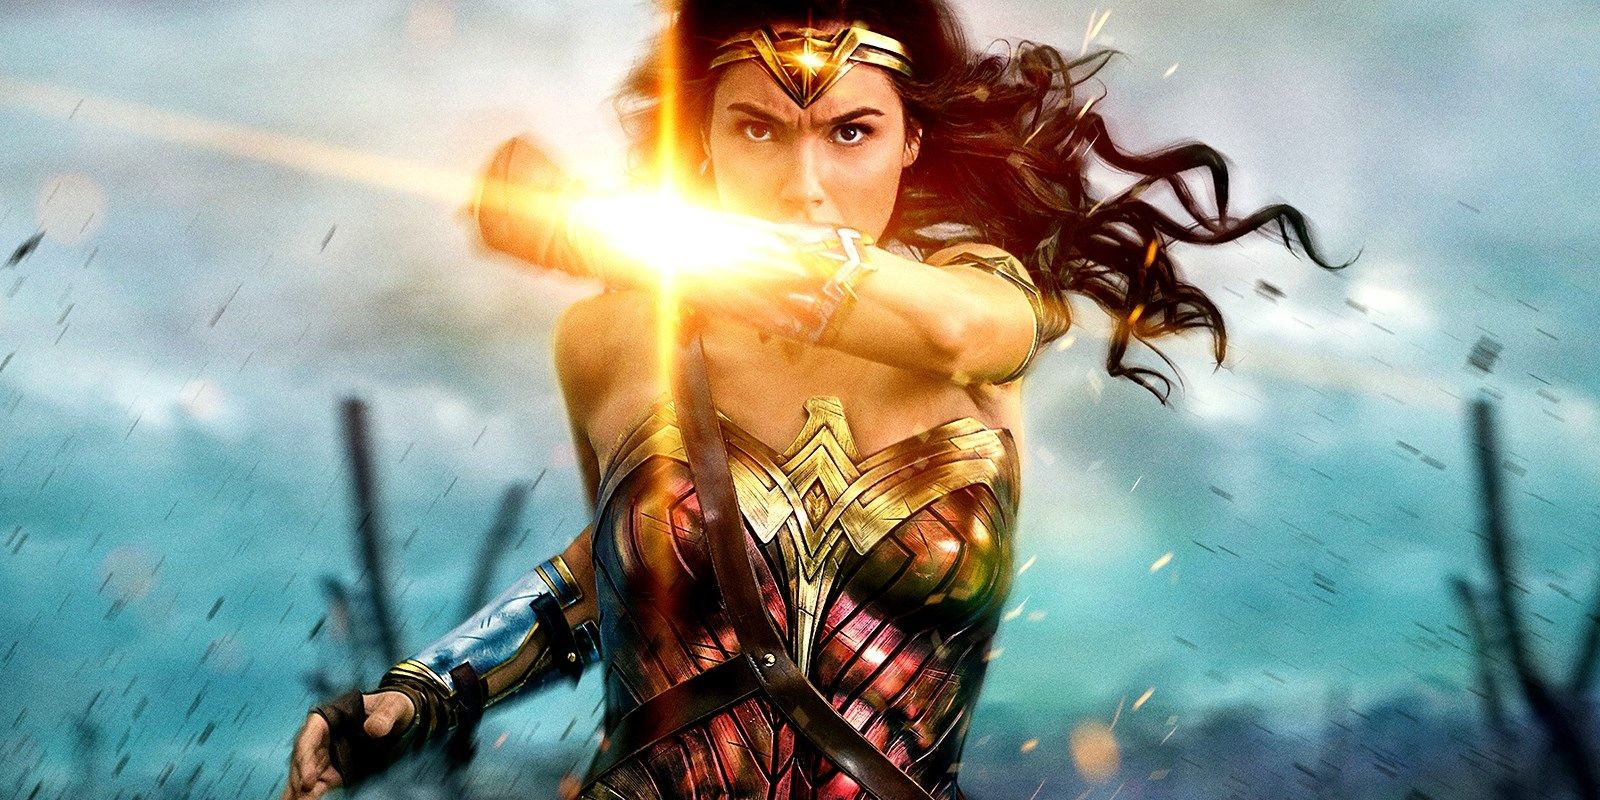 Wonder-Woman-Movie-Poster-Color.jpg?cs=t